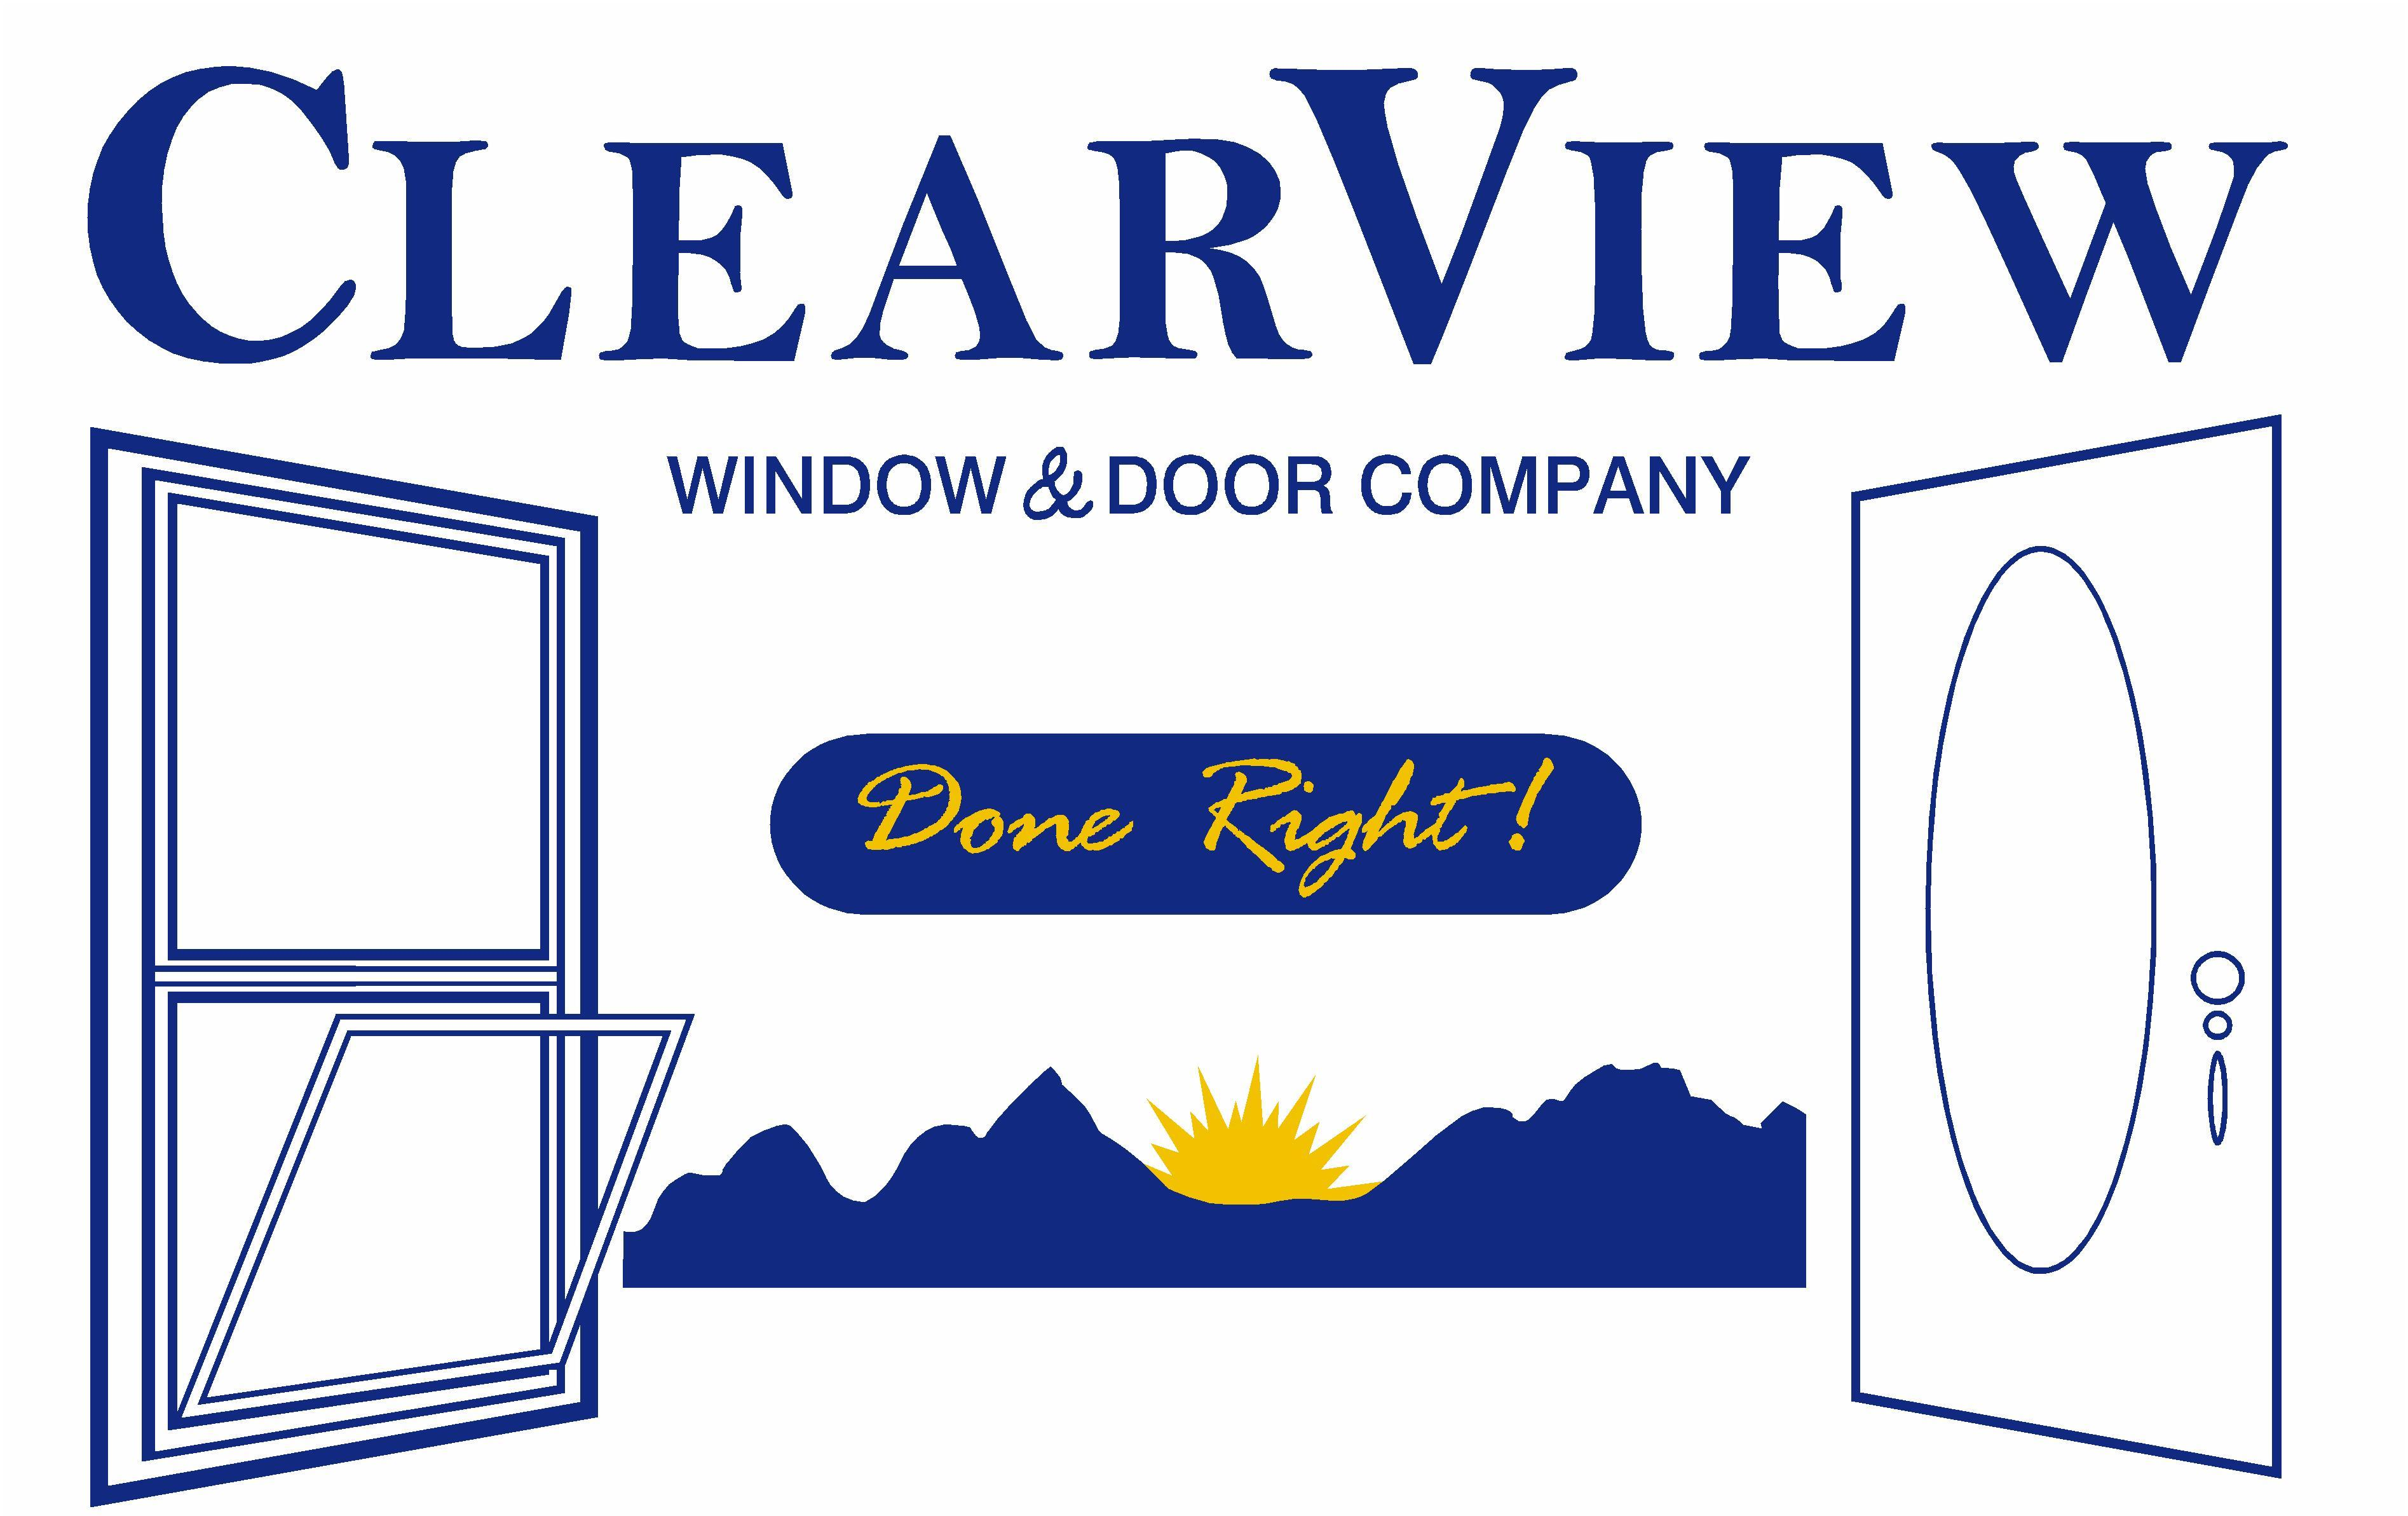 Clearview Window & Door Co Inc